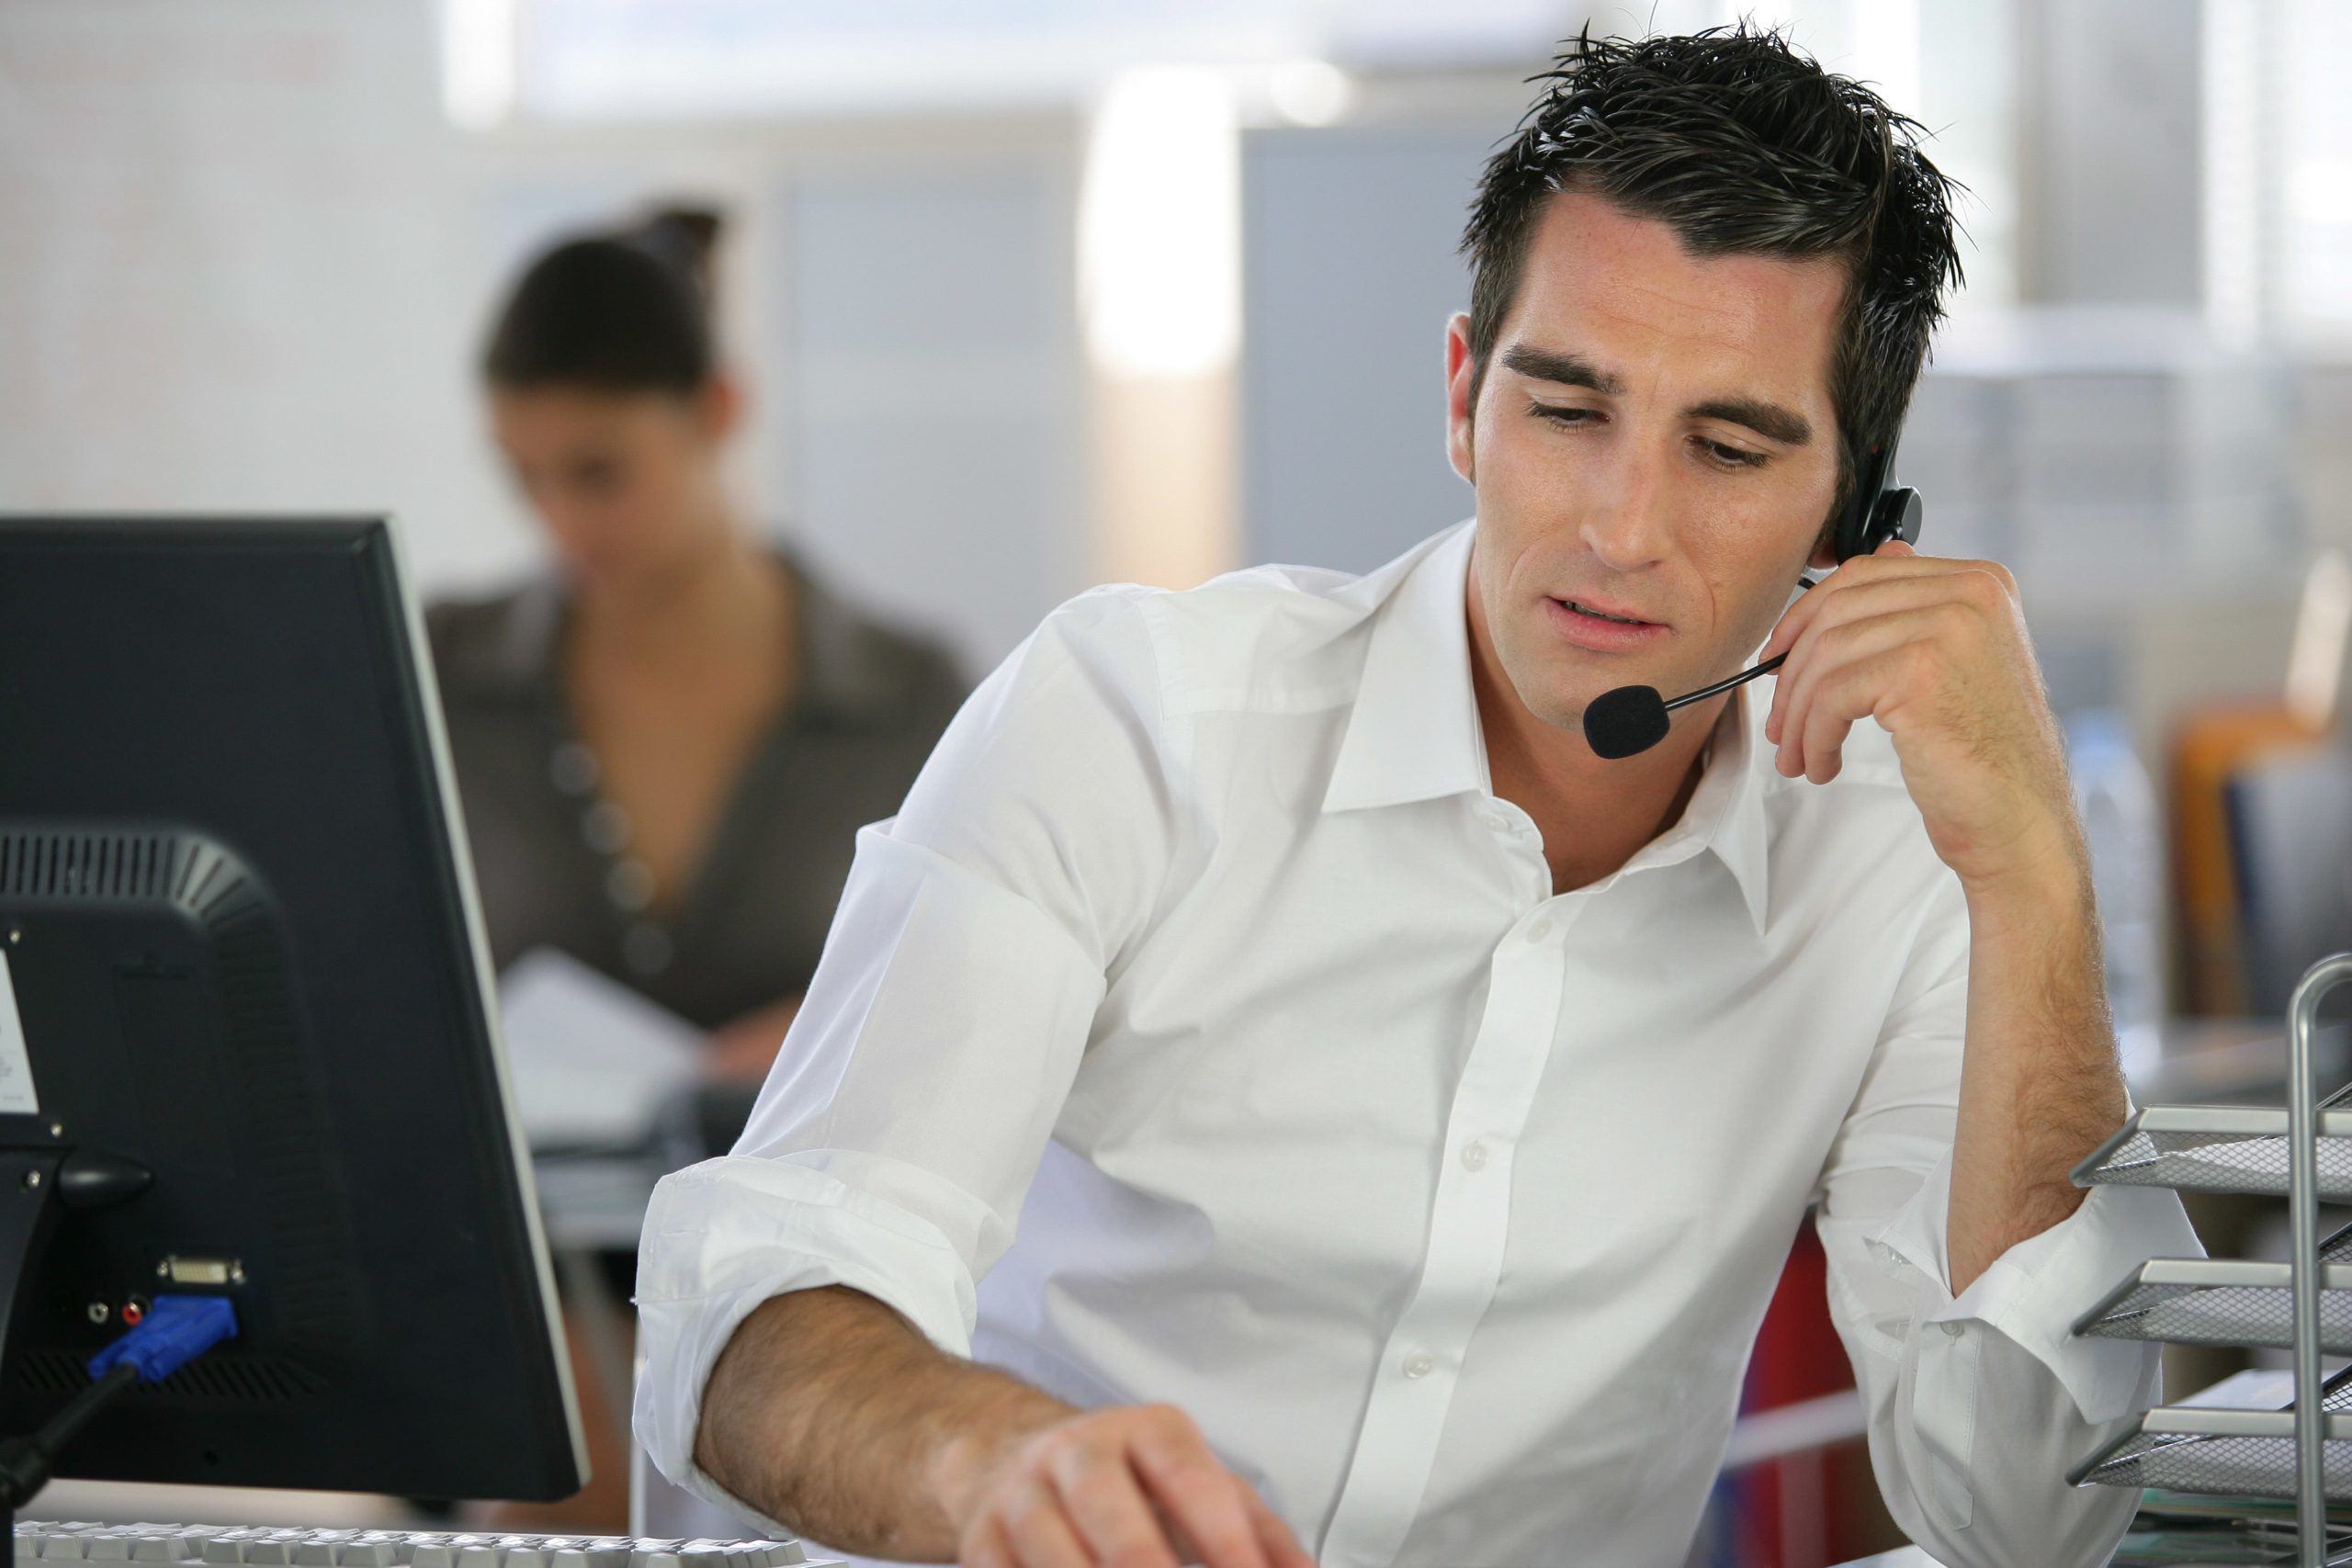 A call centre rep employing active listening skills.